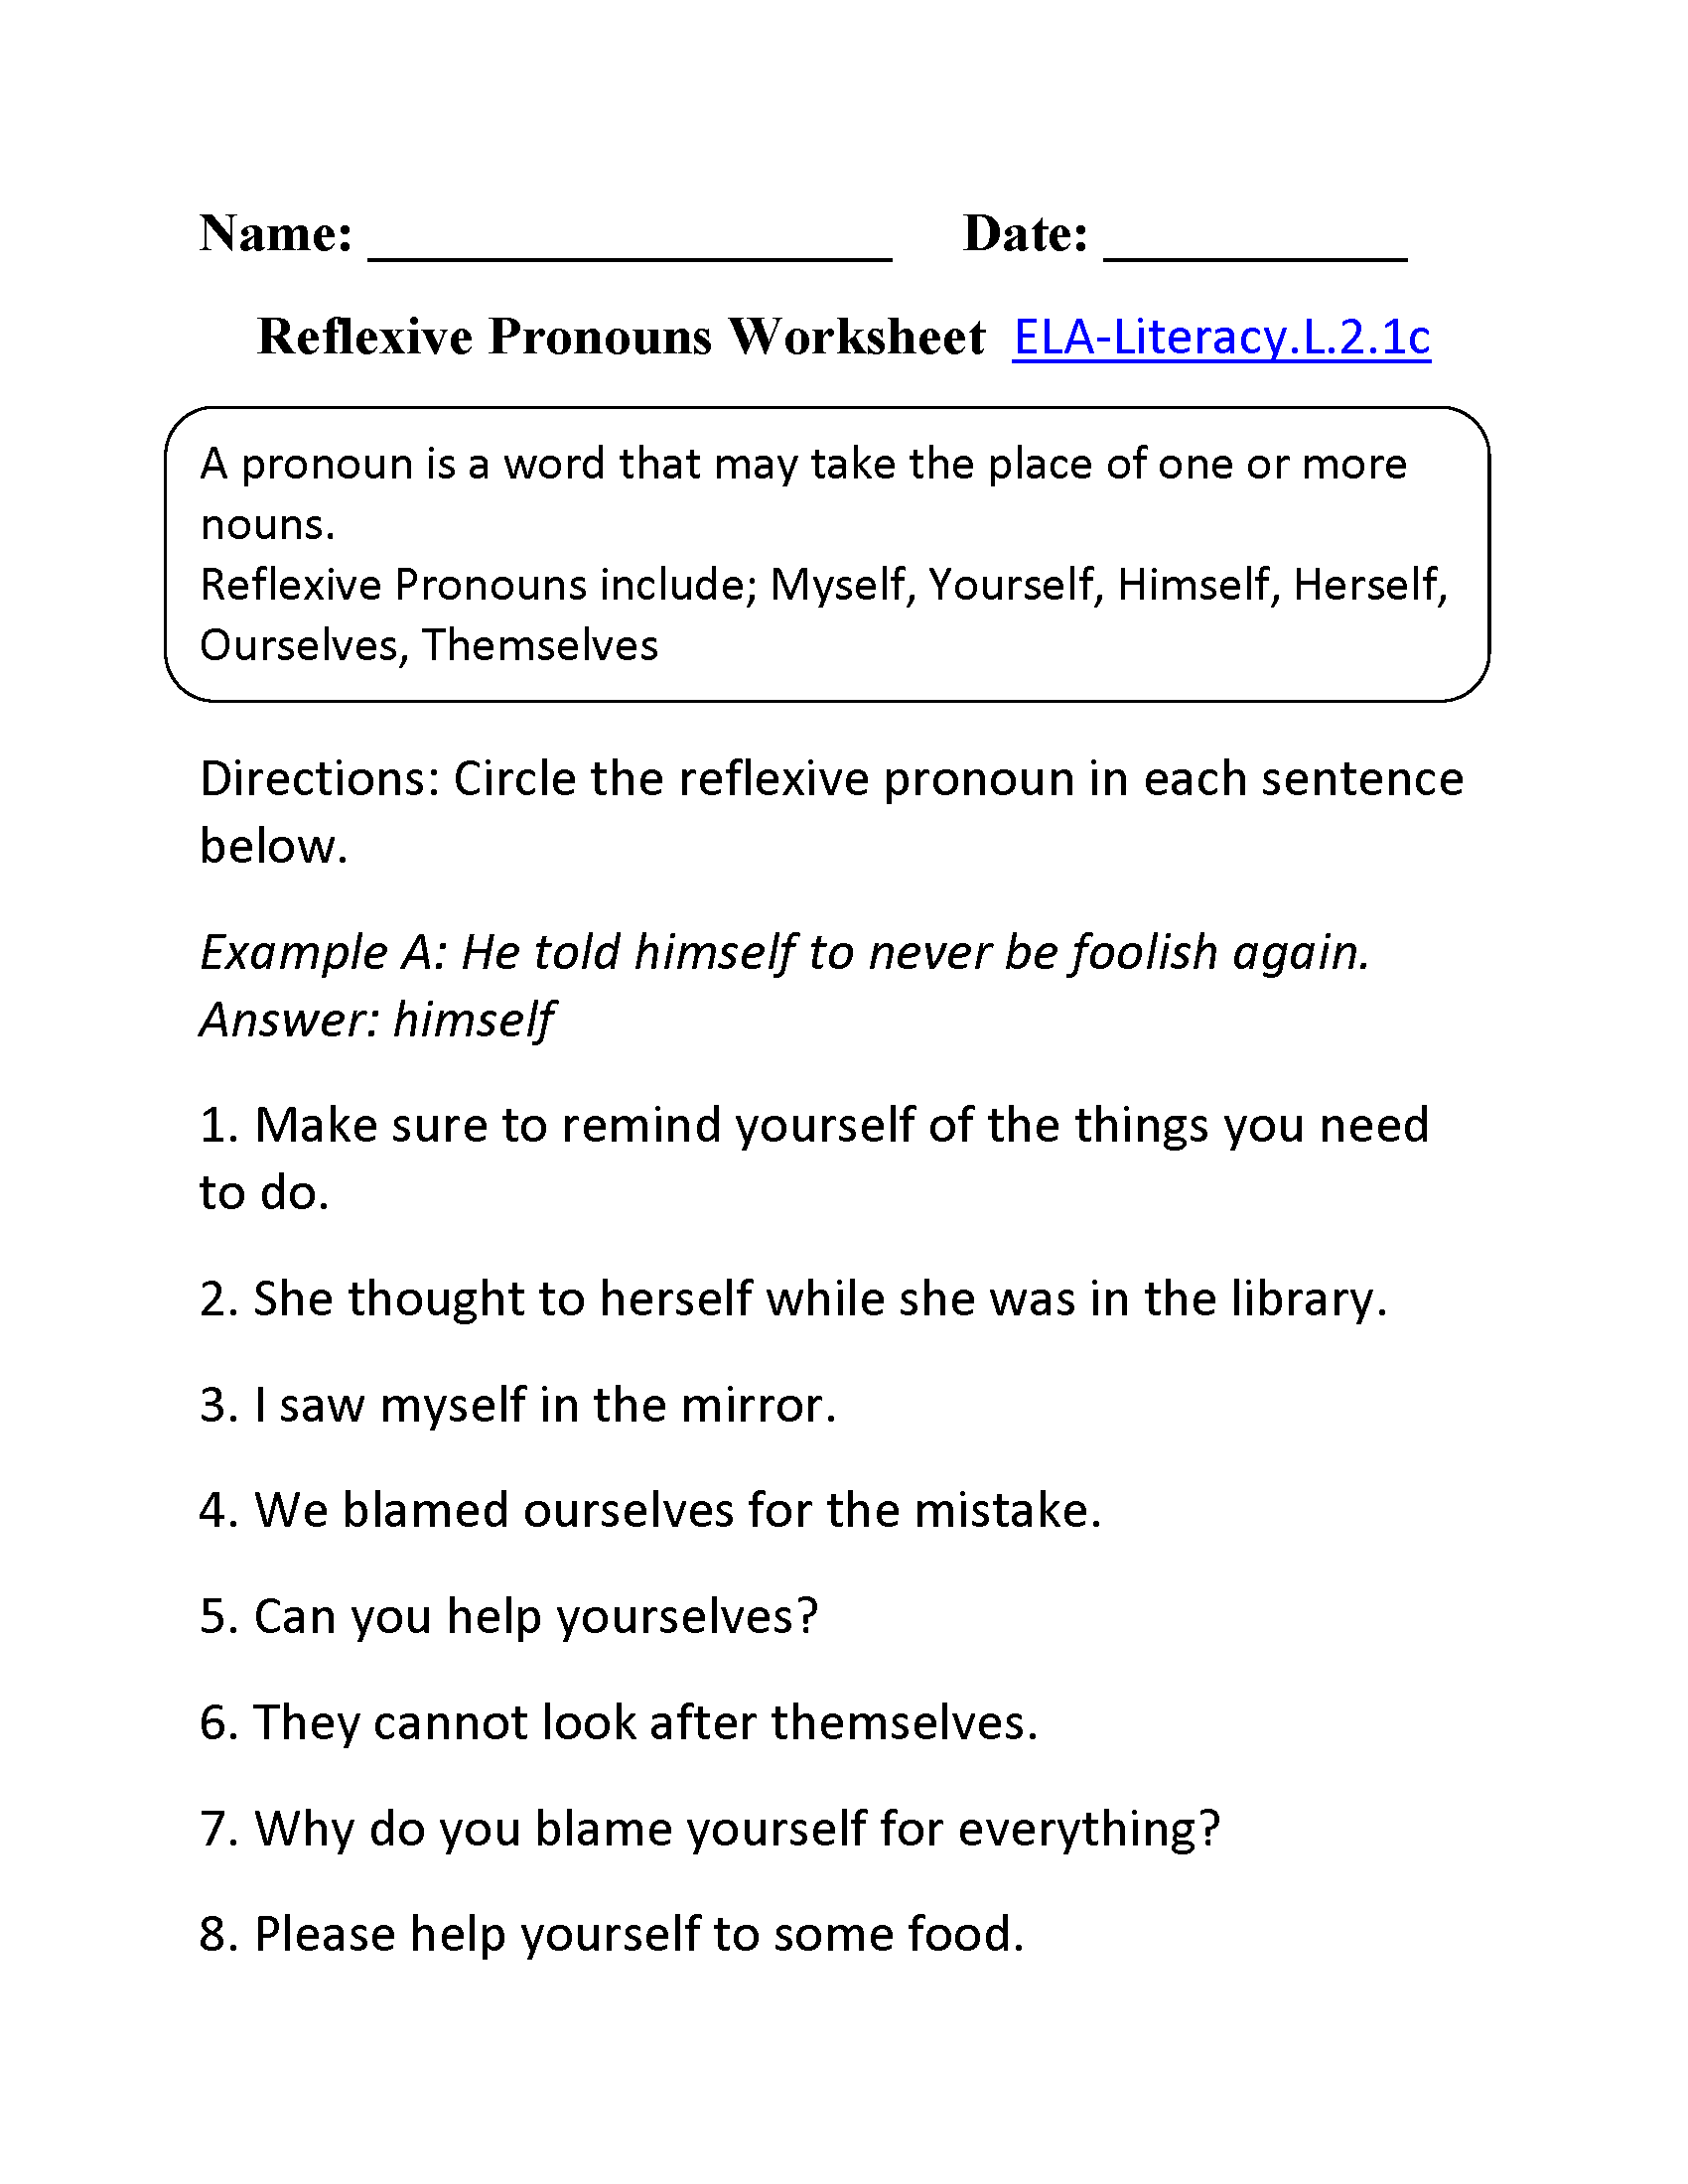 worksheet Pronoun Worksheets 2nd Grade 2nd grade common core language worksheets reflexive pronouns worksheet 1 ela literacy l 2 1c worksheet